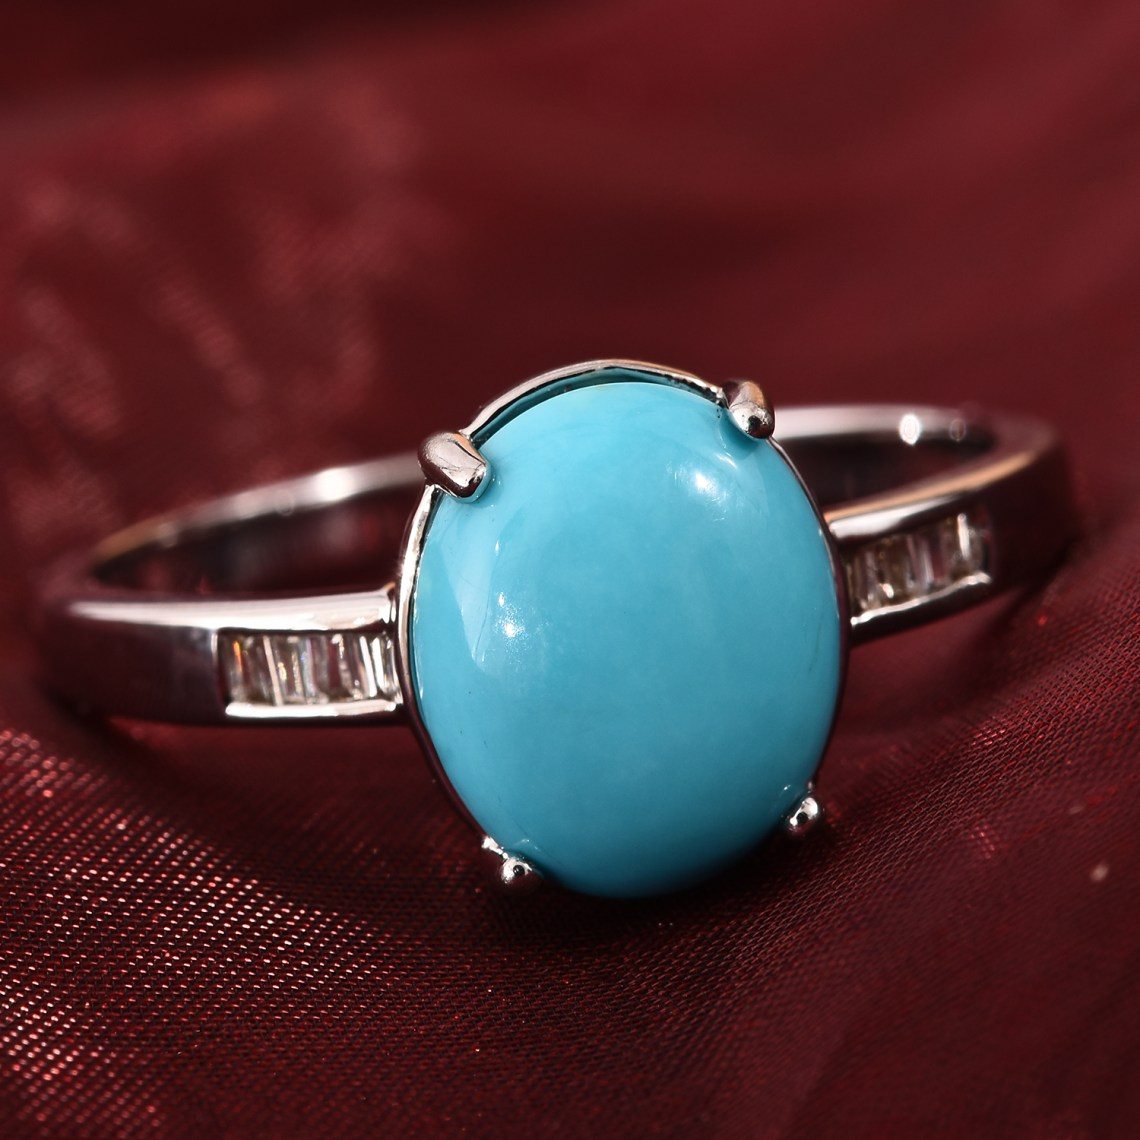 Sleeping Beauty turquoise ring in 18K white gold.